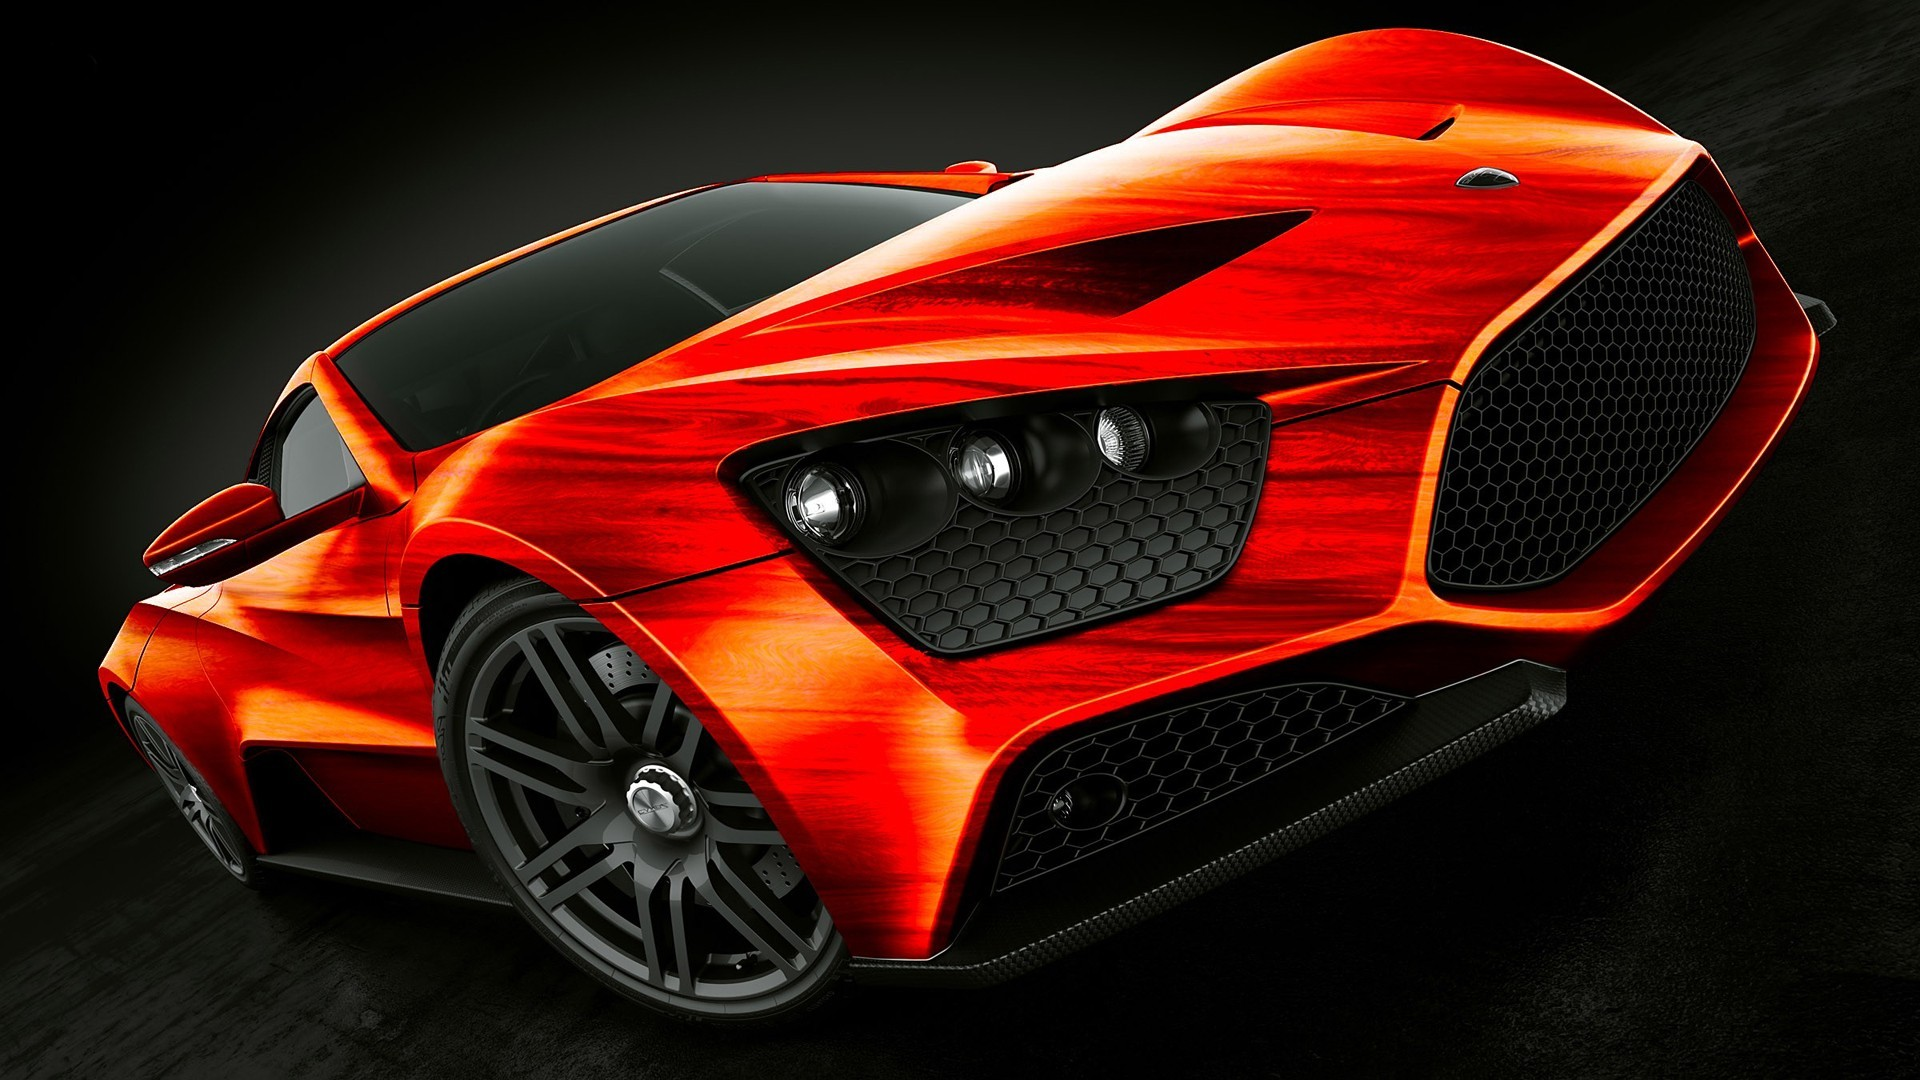 Super Car 5760x1080 Wallpaper Car Orange Zenvo Zenvo St1 Supercars Wallpapers Hd